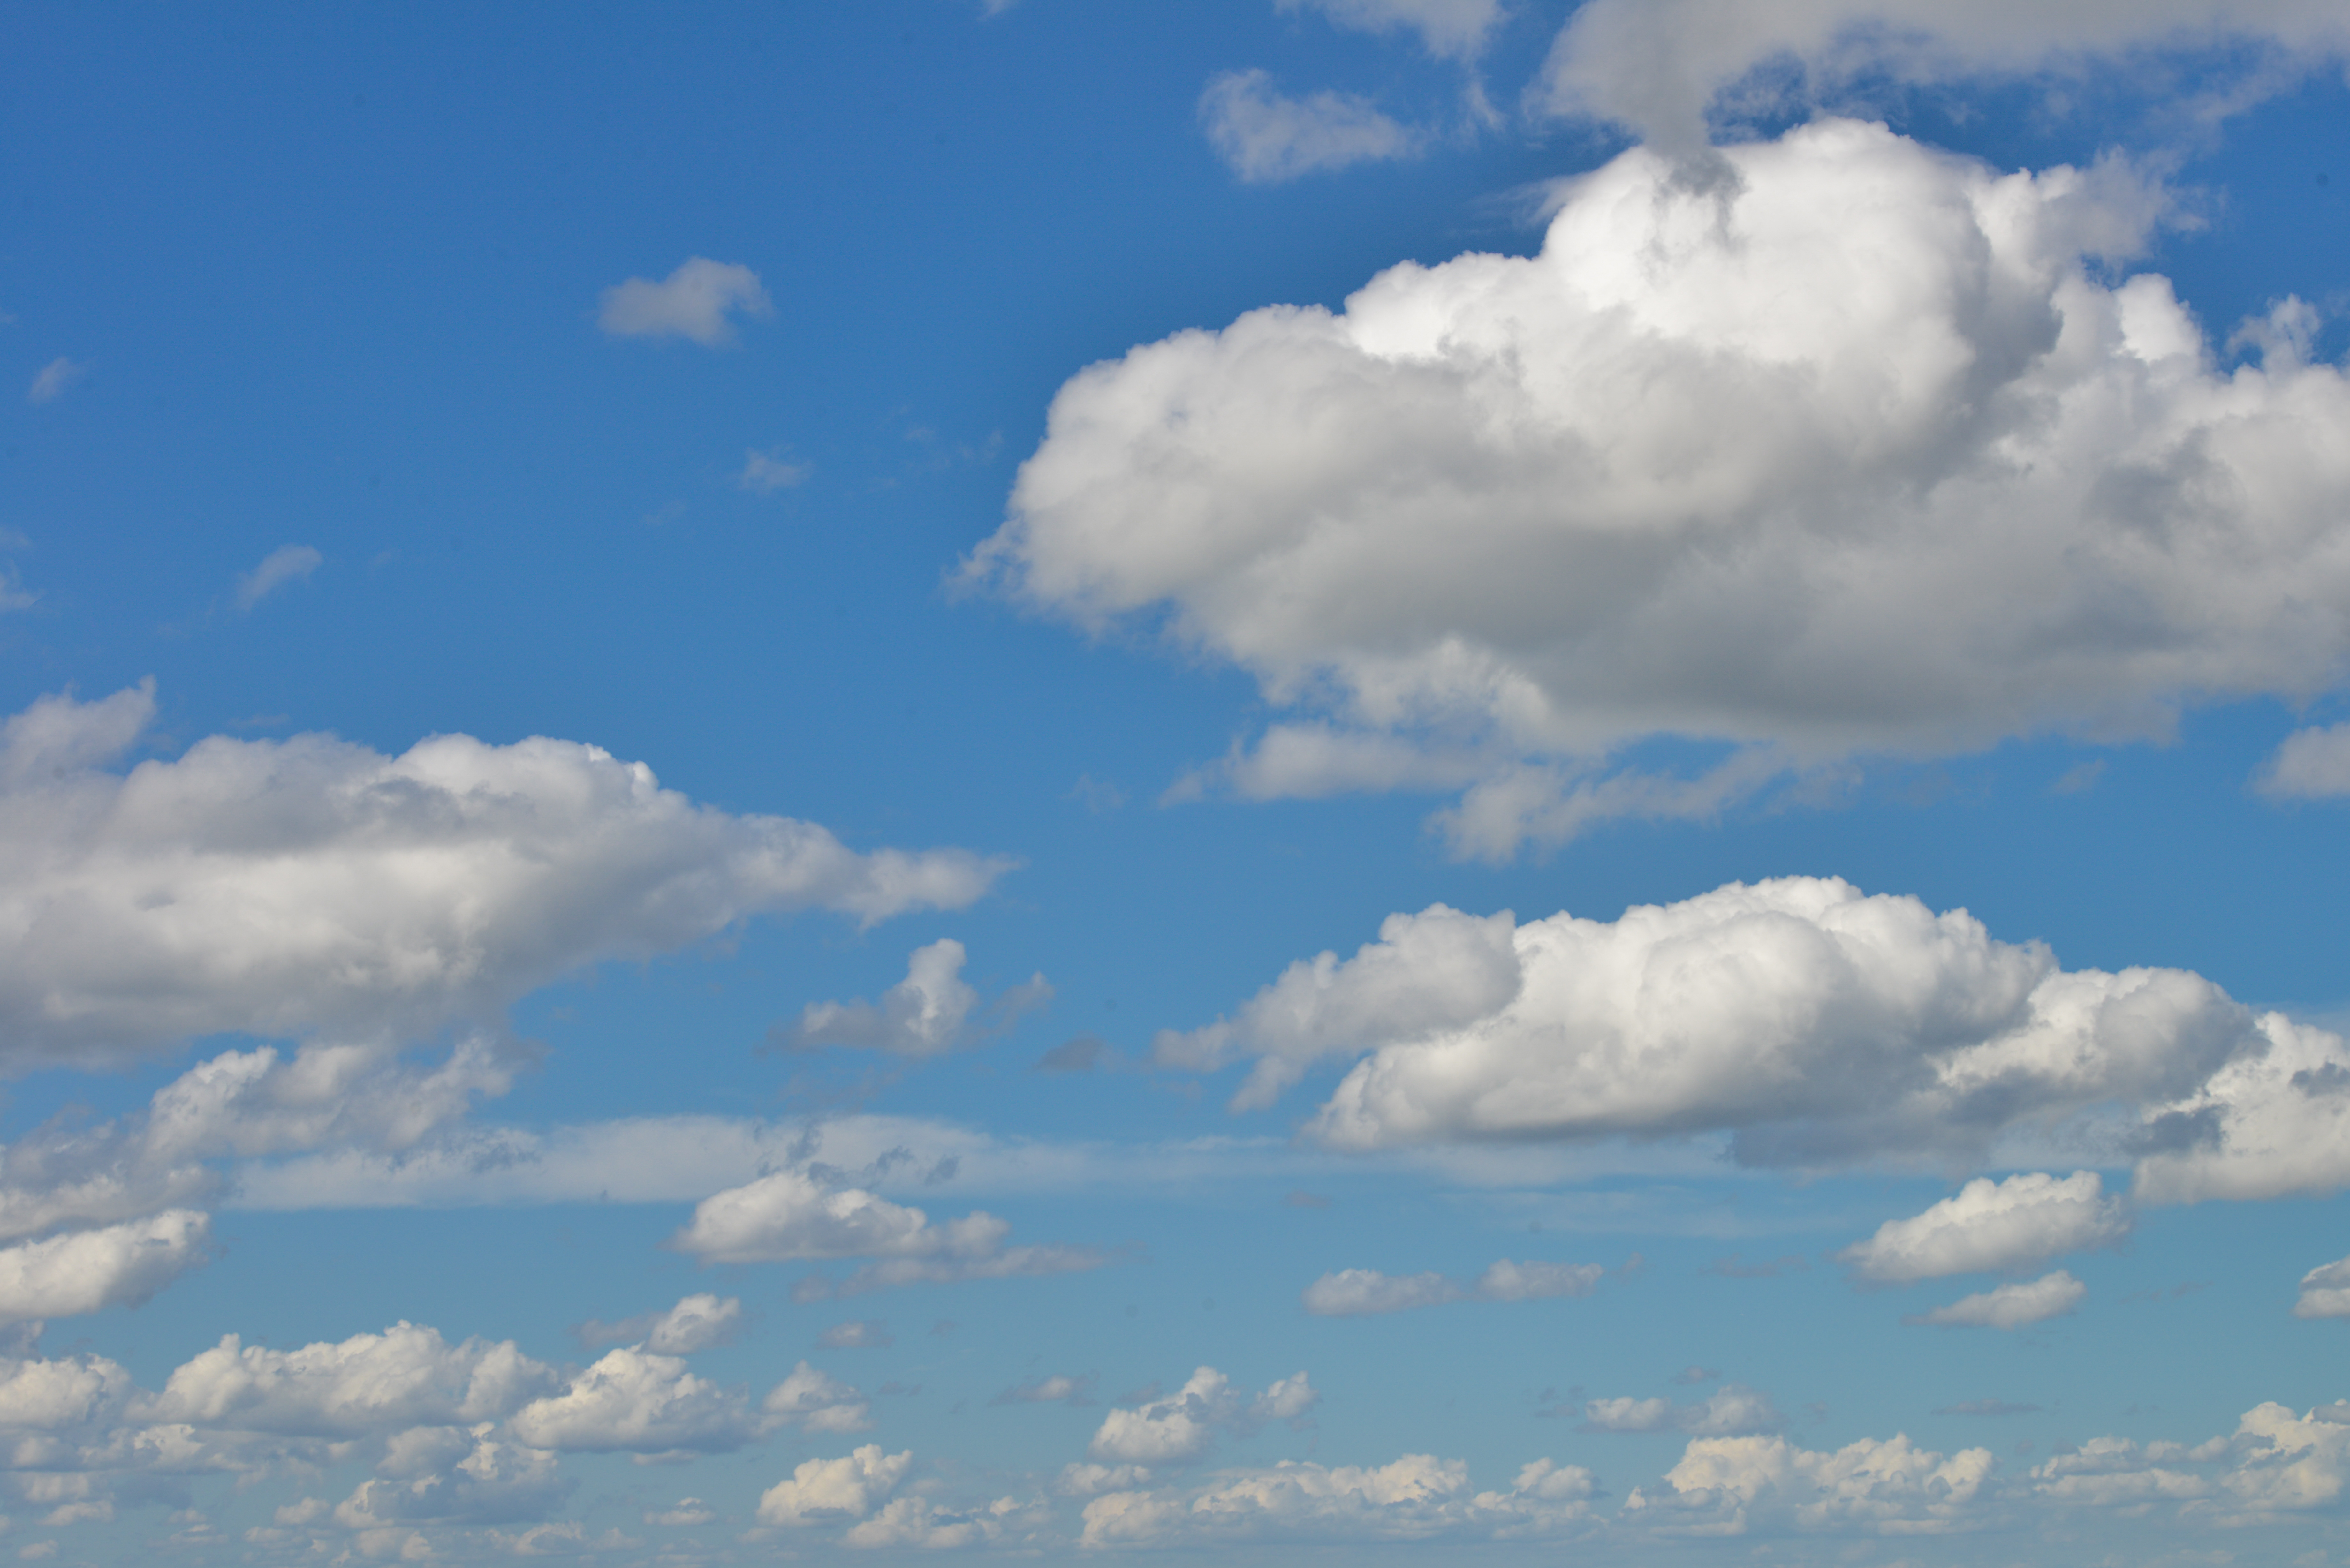 'Light Blue Spring Sky with Clouds, May Be Used as ...  |Light Blue Sky Clouds